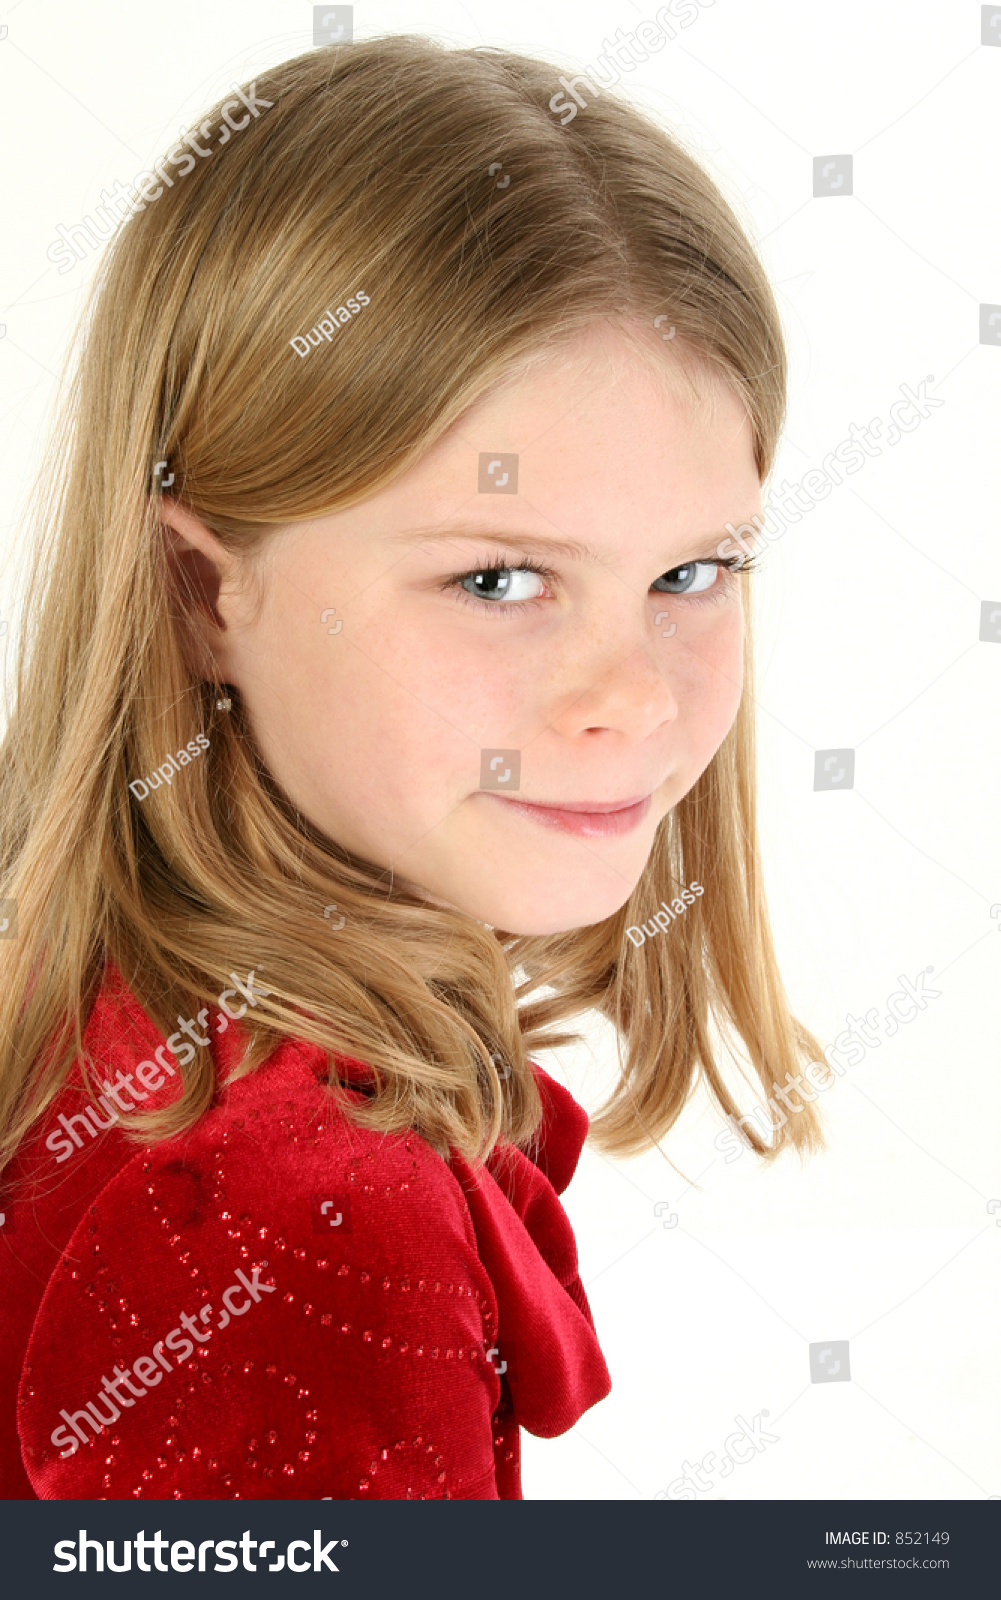 Beautiful 10 Year Old Girl Red Stock Photo 852149 - Shutterstock